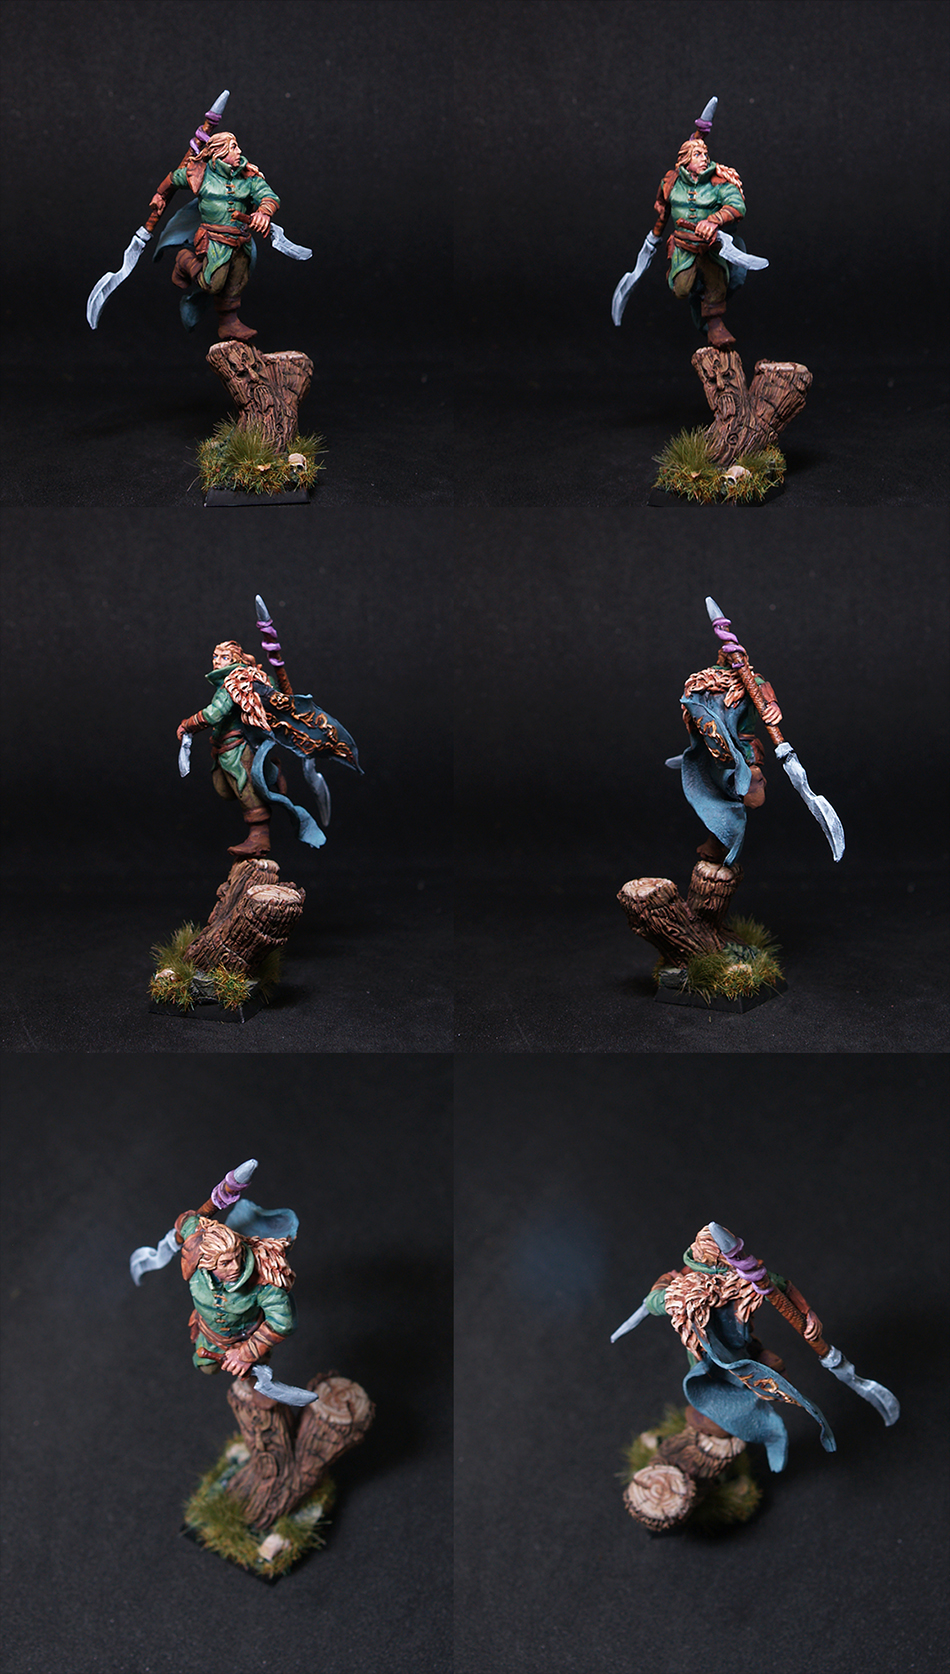 Wood El Warrior- Scibor miniatures